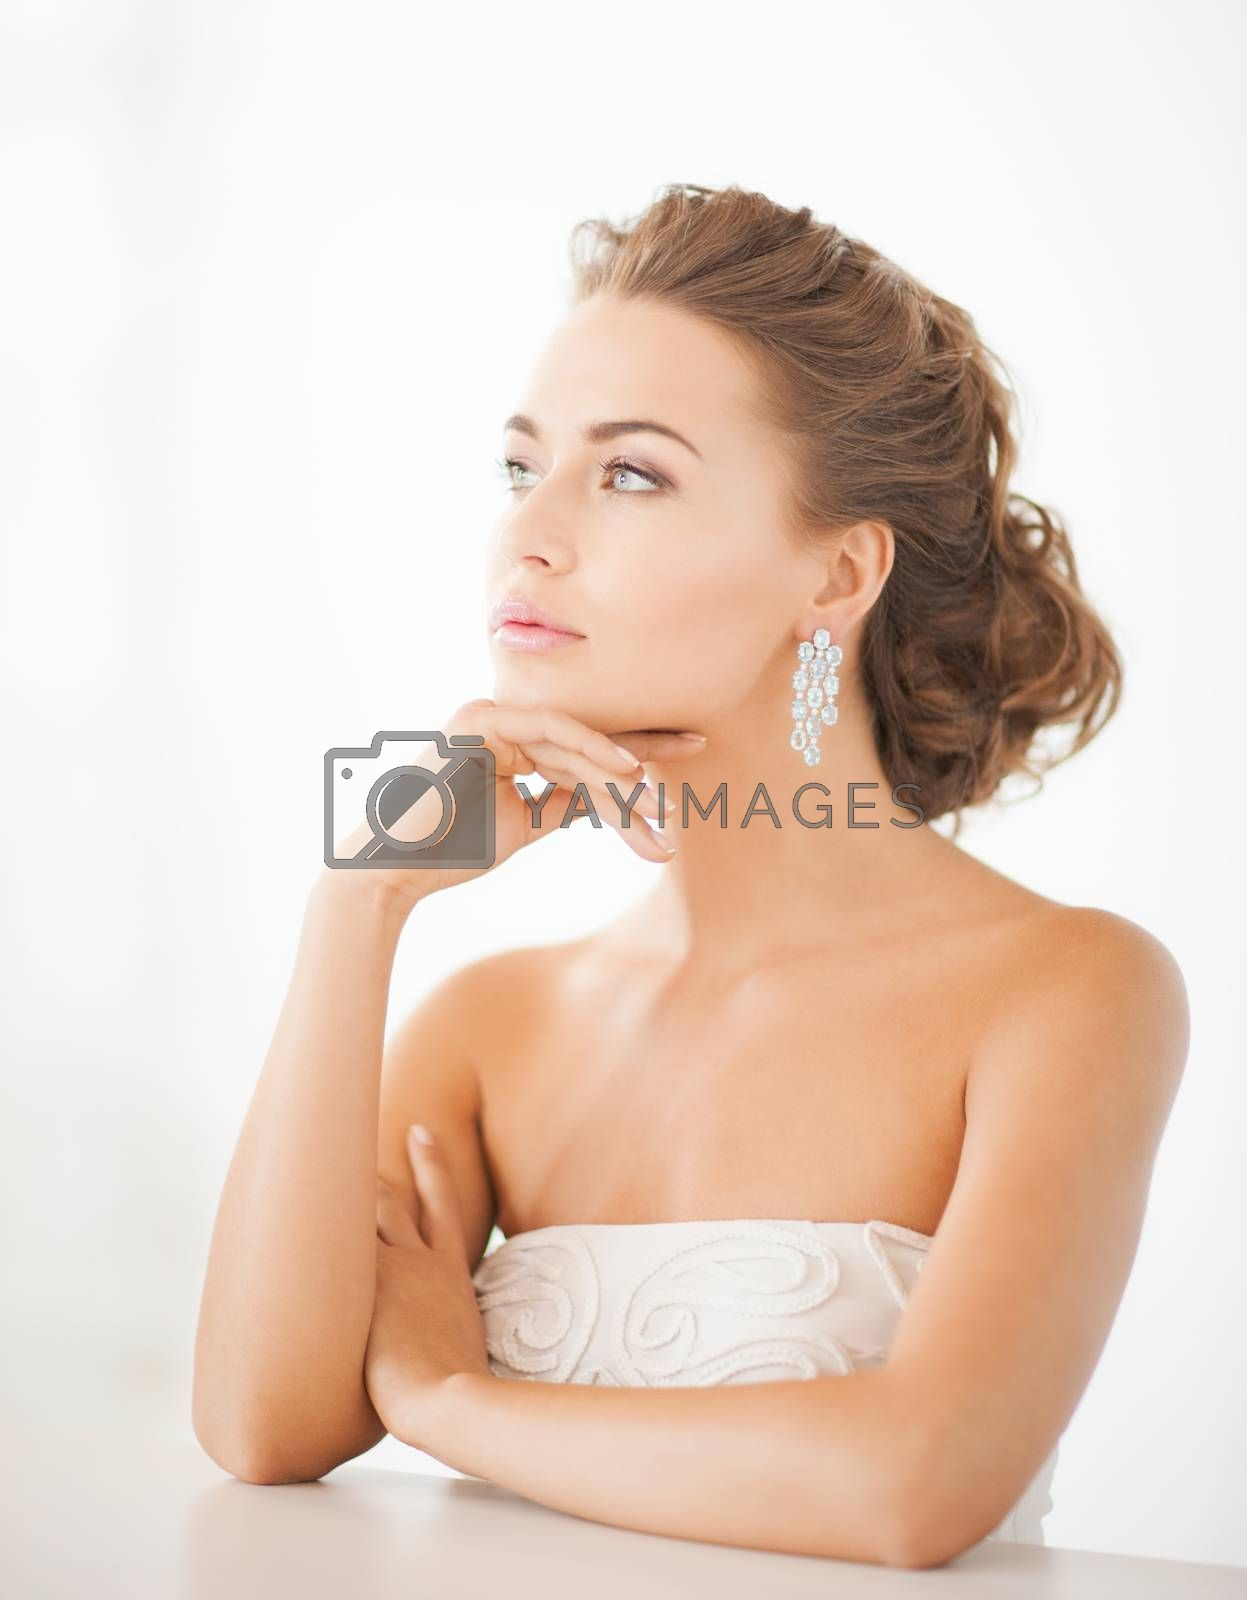 woman wearing shiny diamond earrings by dolgachov